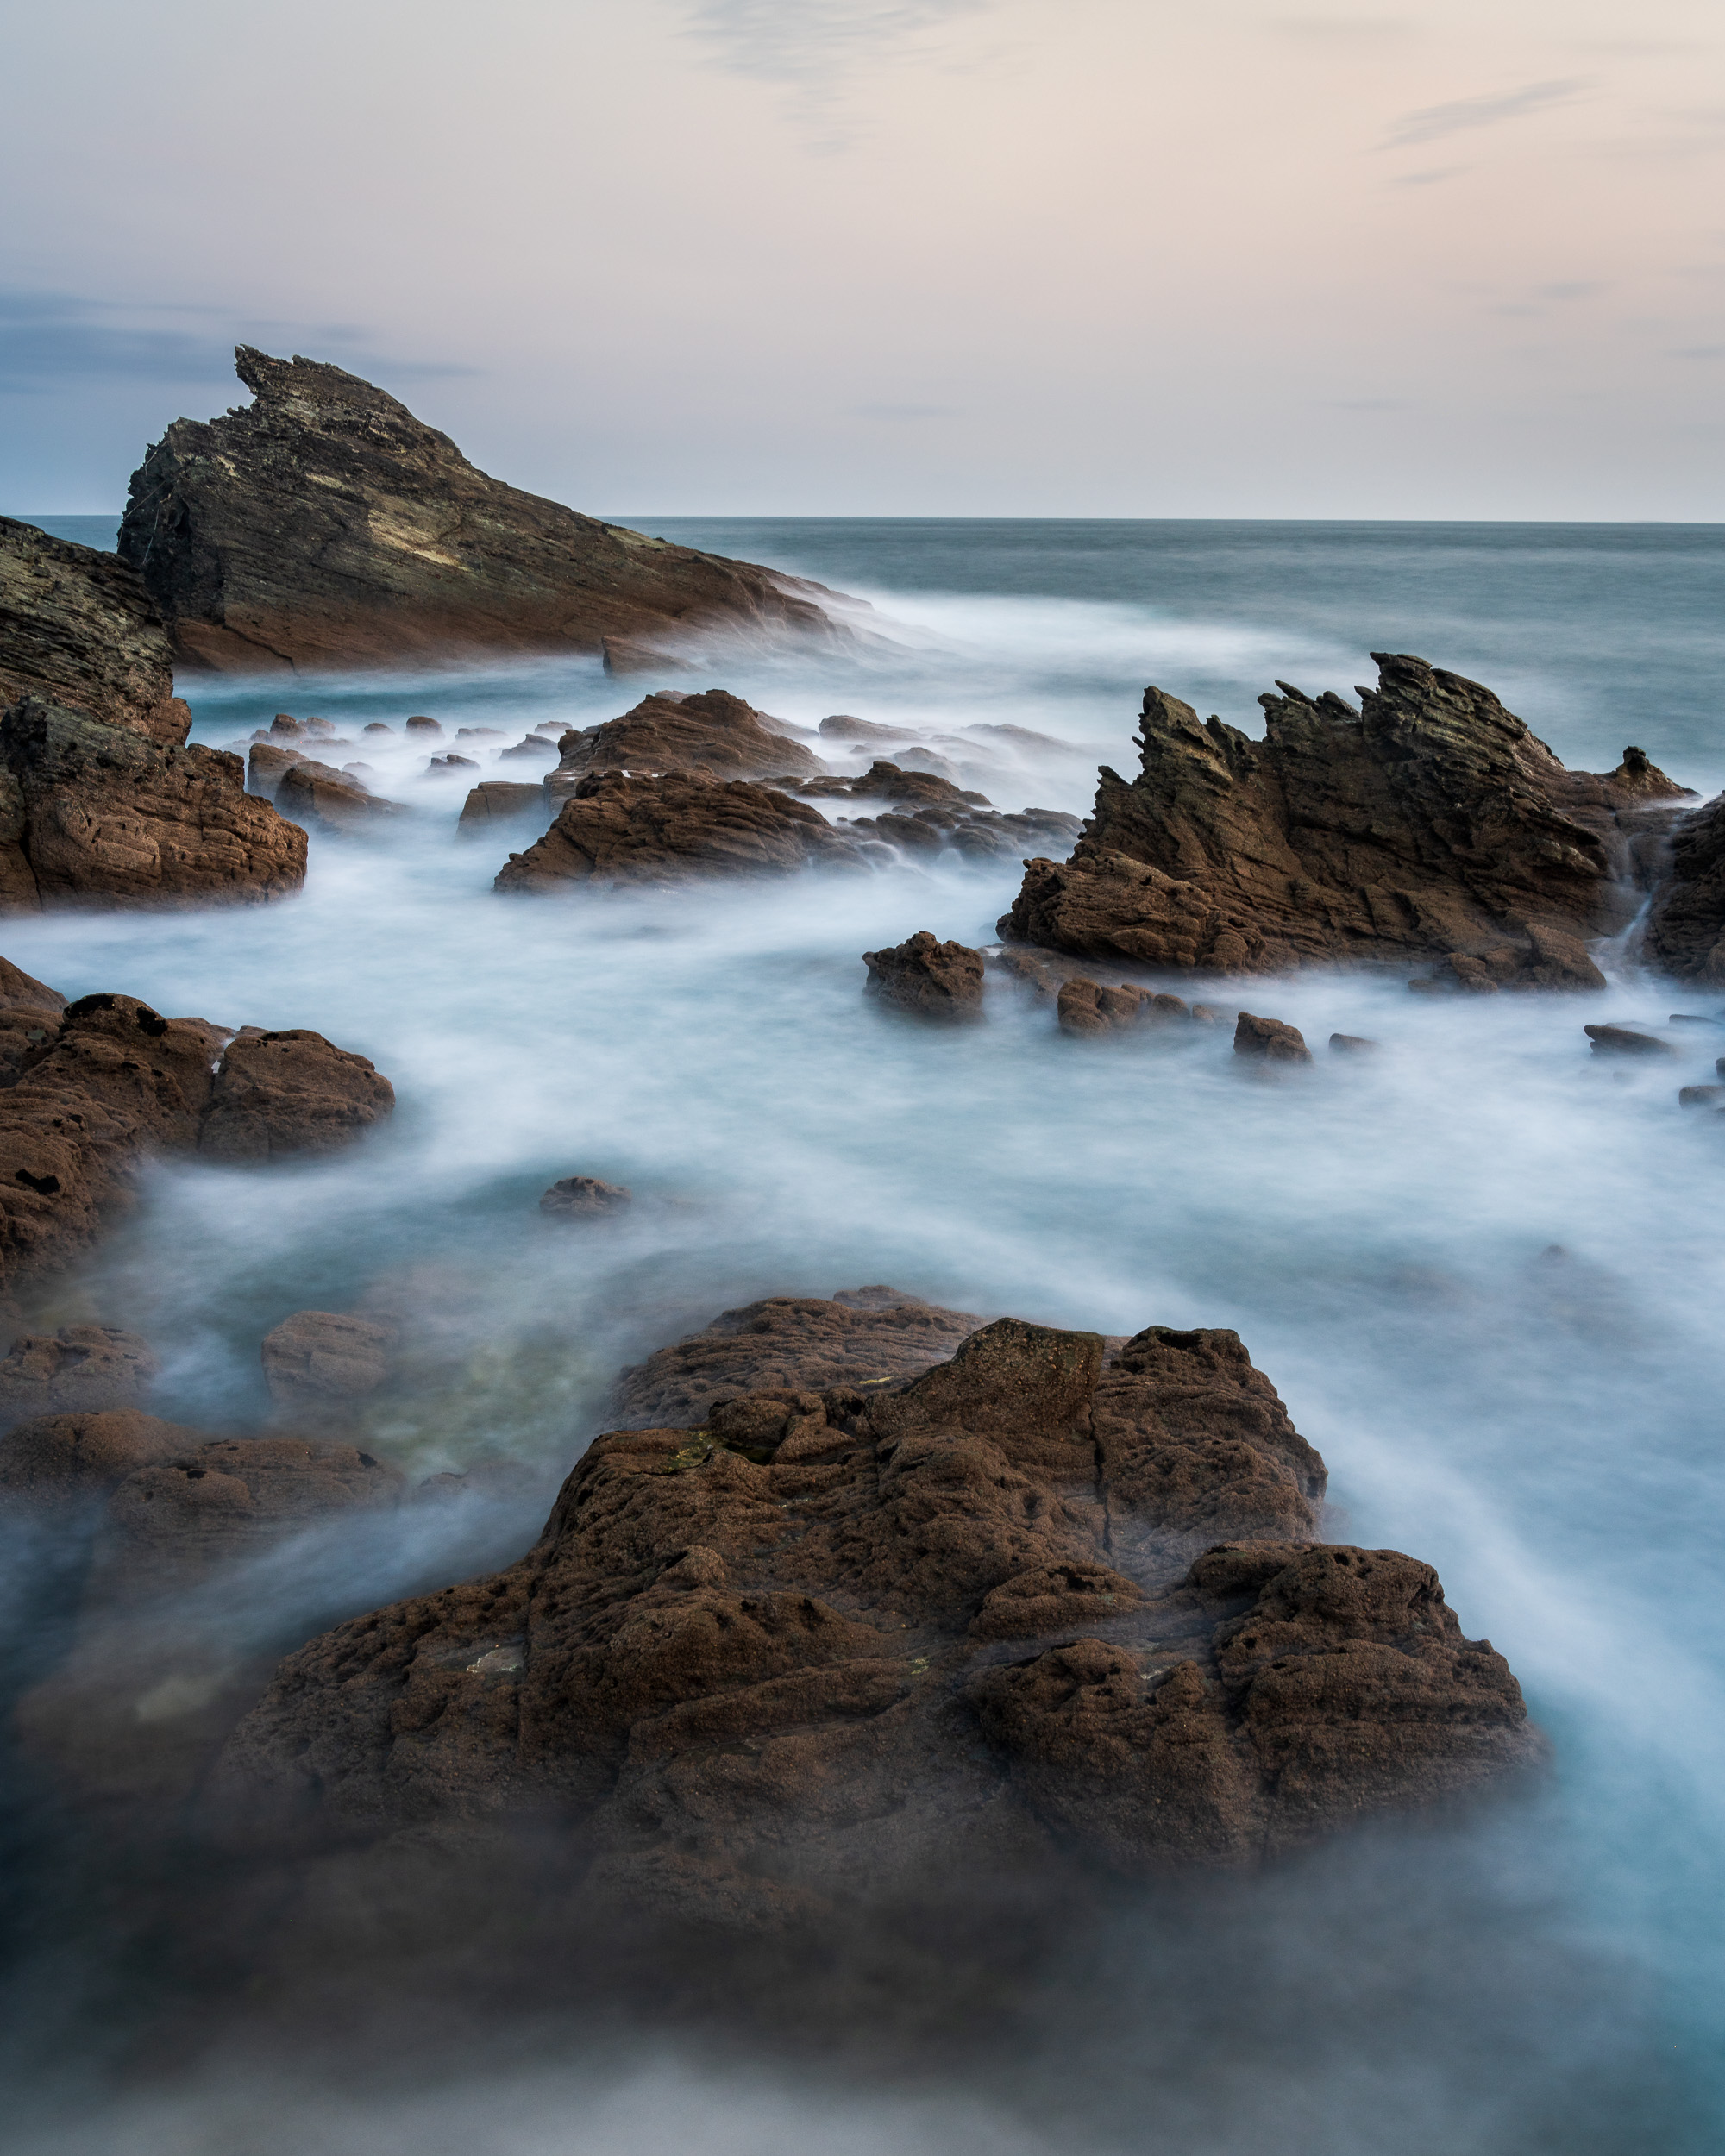 The Rocks at Gammon Head #4, Devon  - Nikon D850, Nikkor 24-70 mm f/2.8 VR at 27 mm, 30 seconds at ISO 64, f/13, Lee Filters Circular Polariser and 6 Stop IR ND.